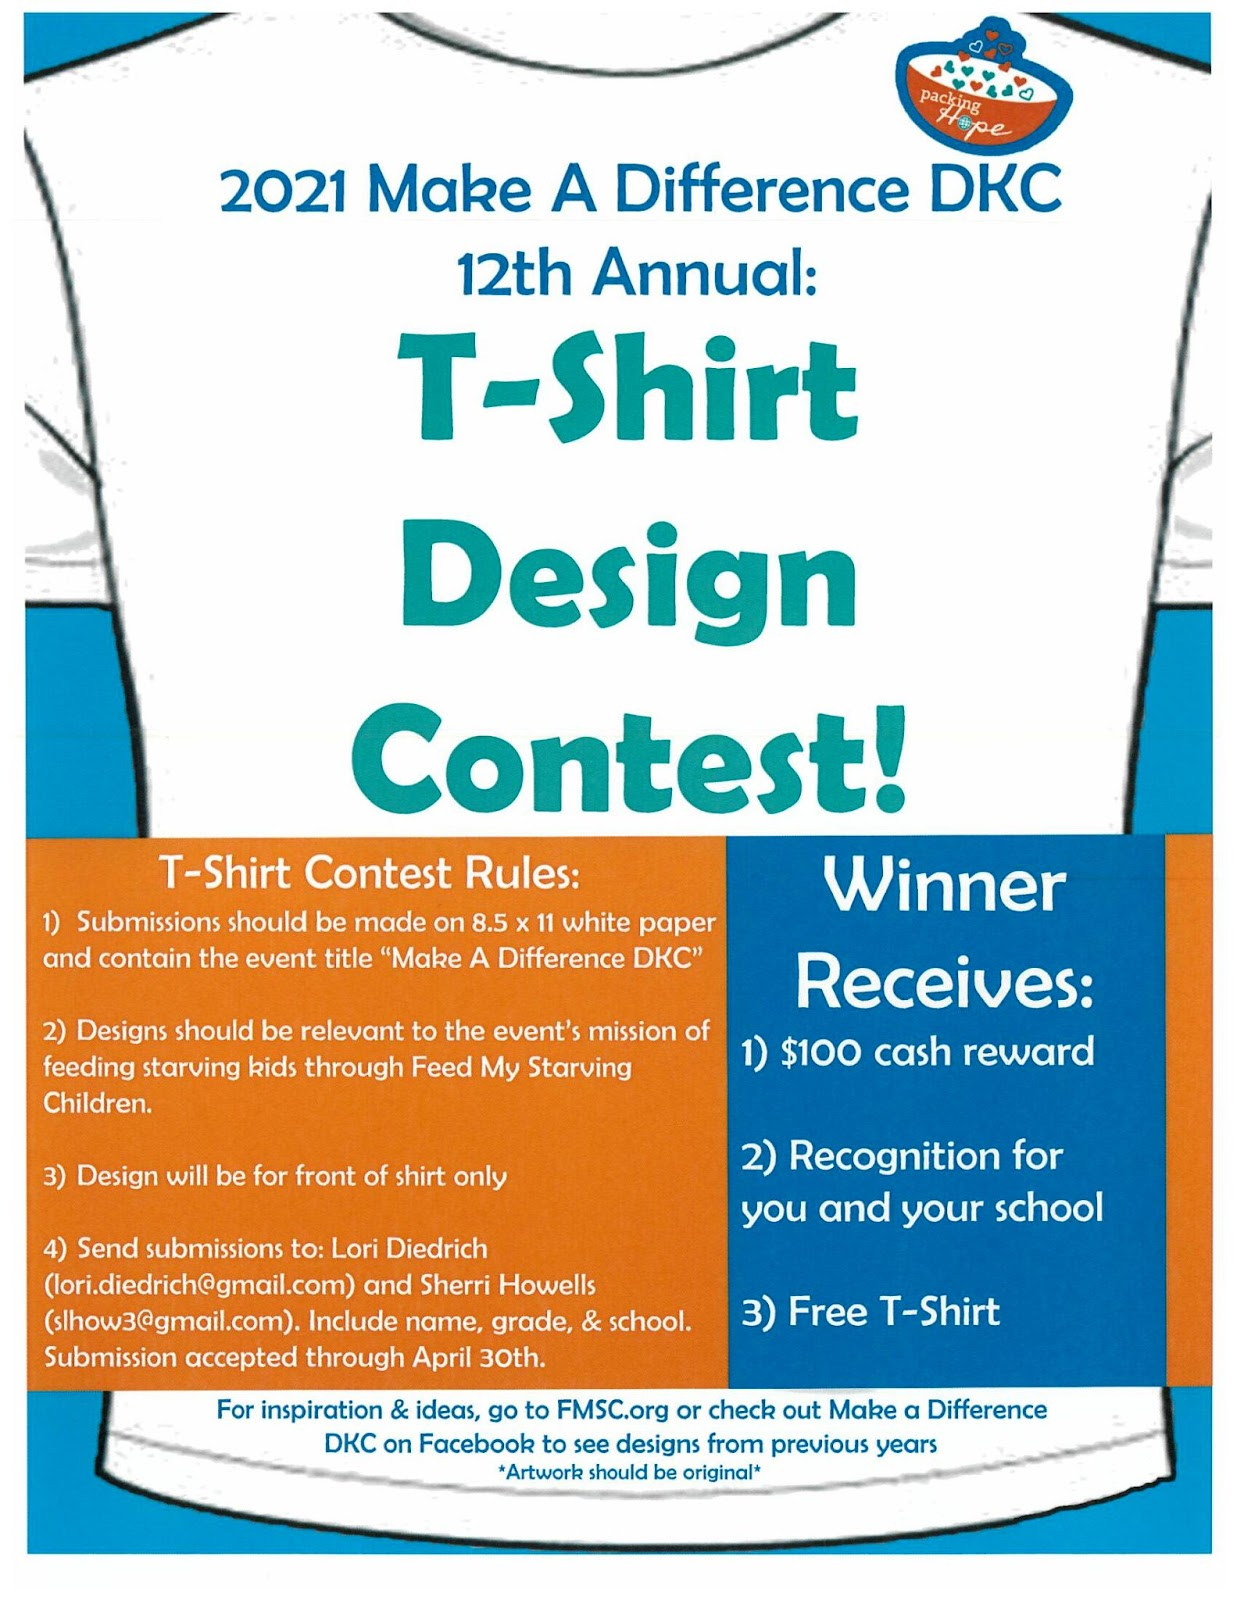 Feed My Starving Children T-Shirt Design Contest Poster